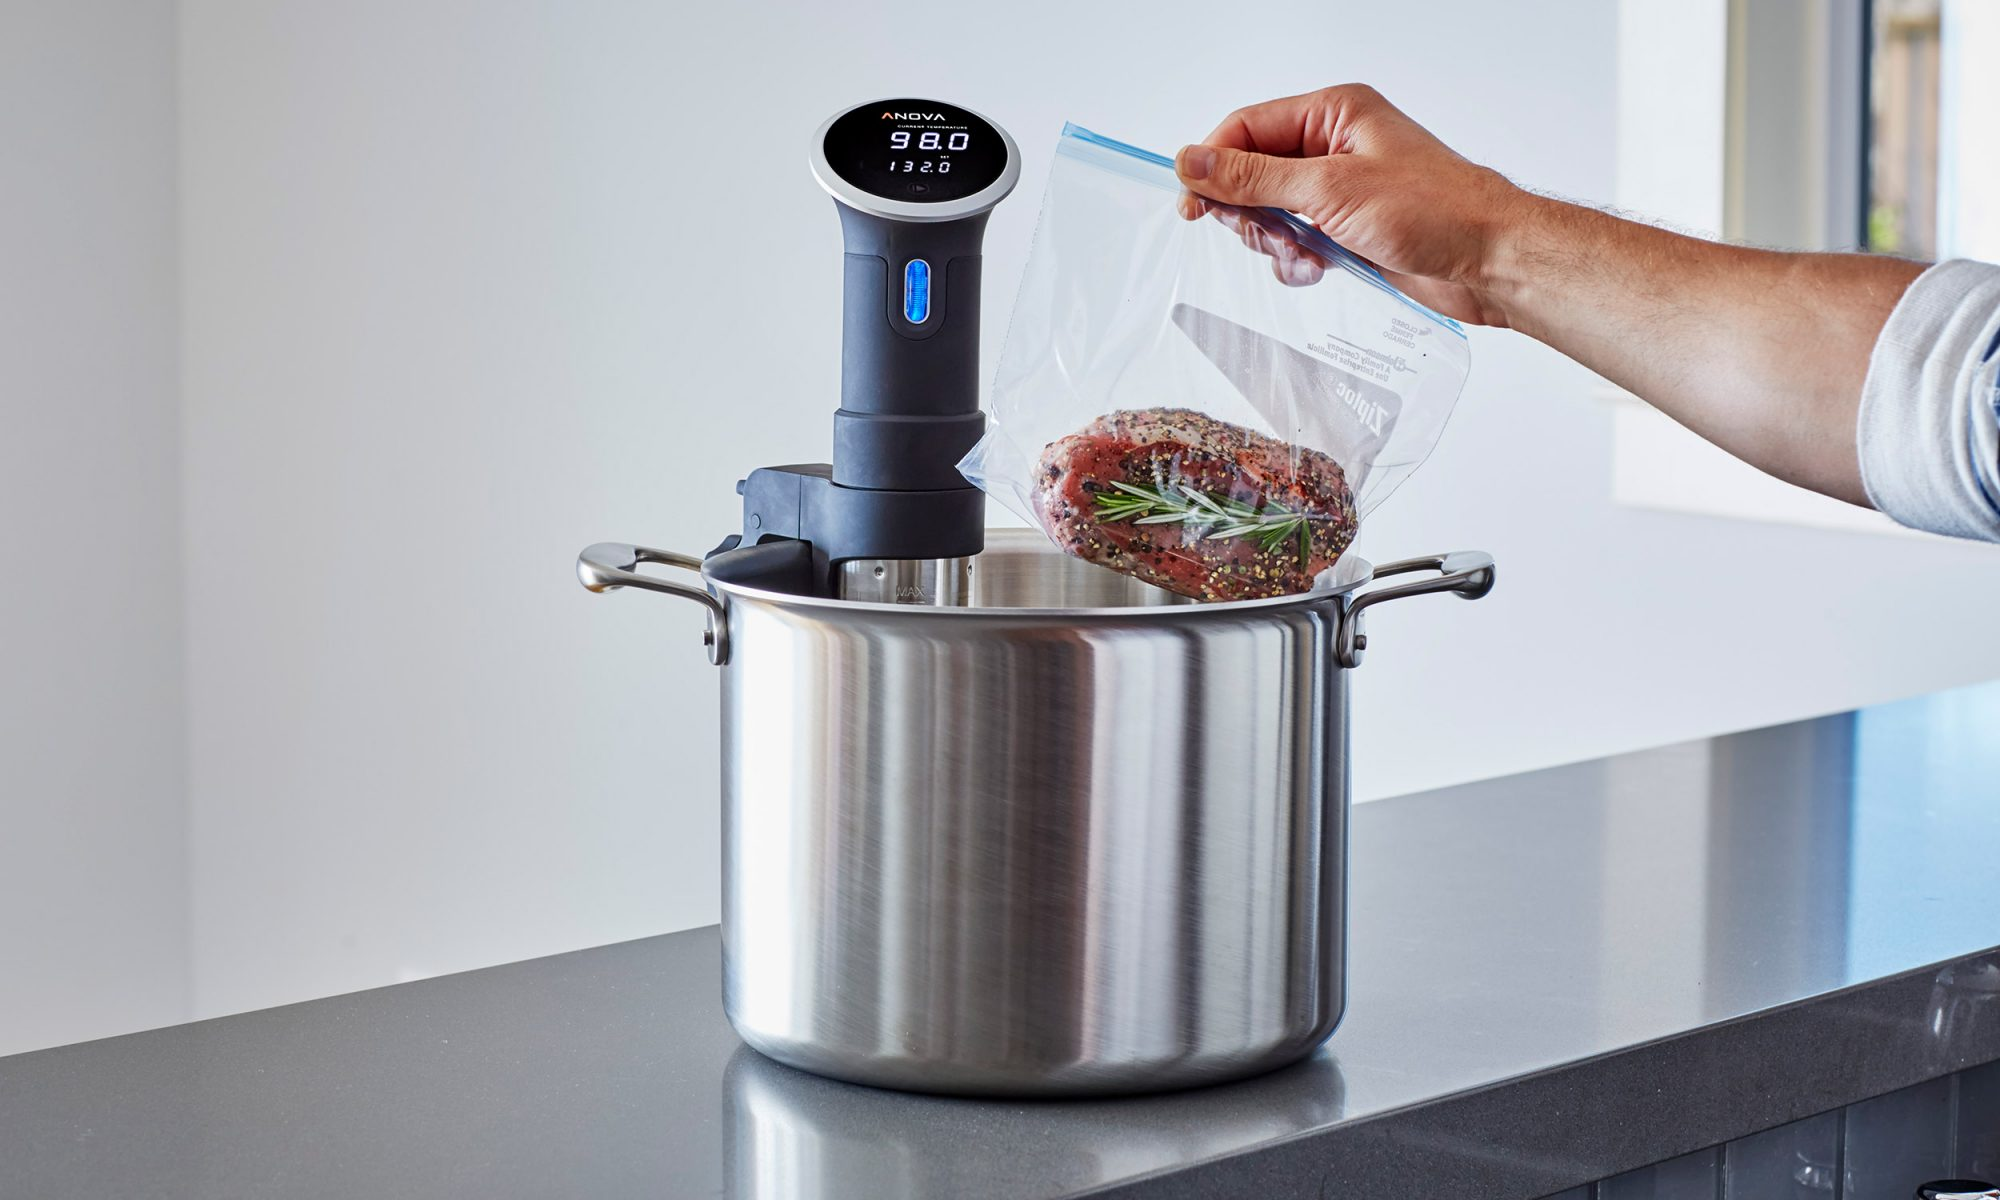 EC: The Best Kitchen Gift for Your Parents Is a Smart Sous Vide